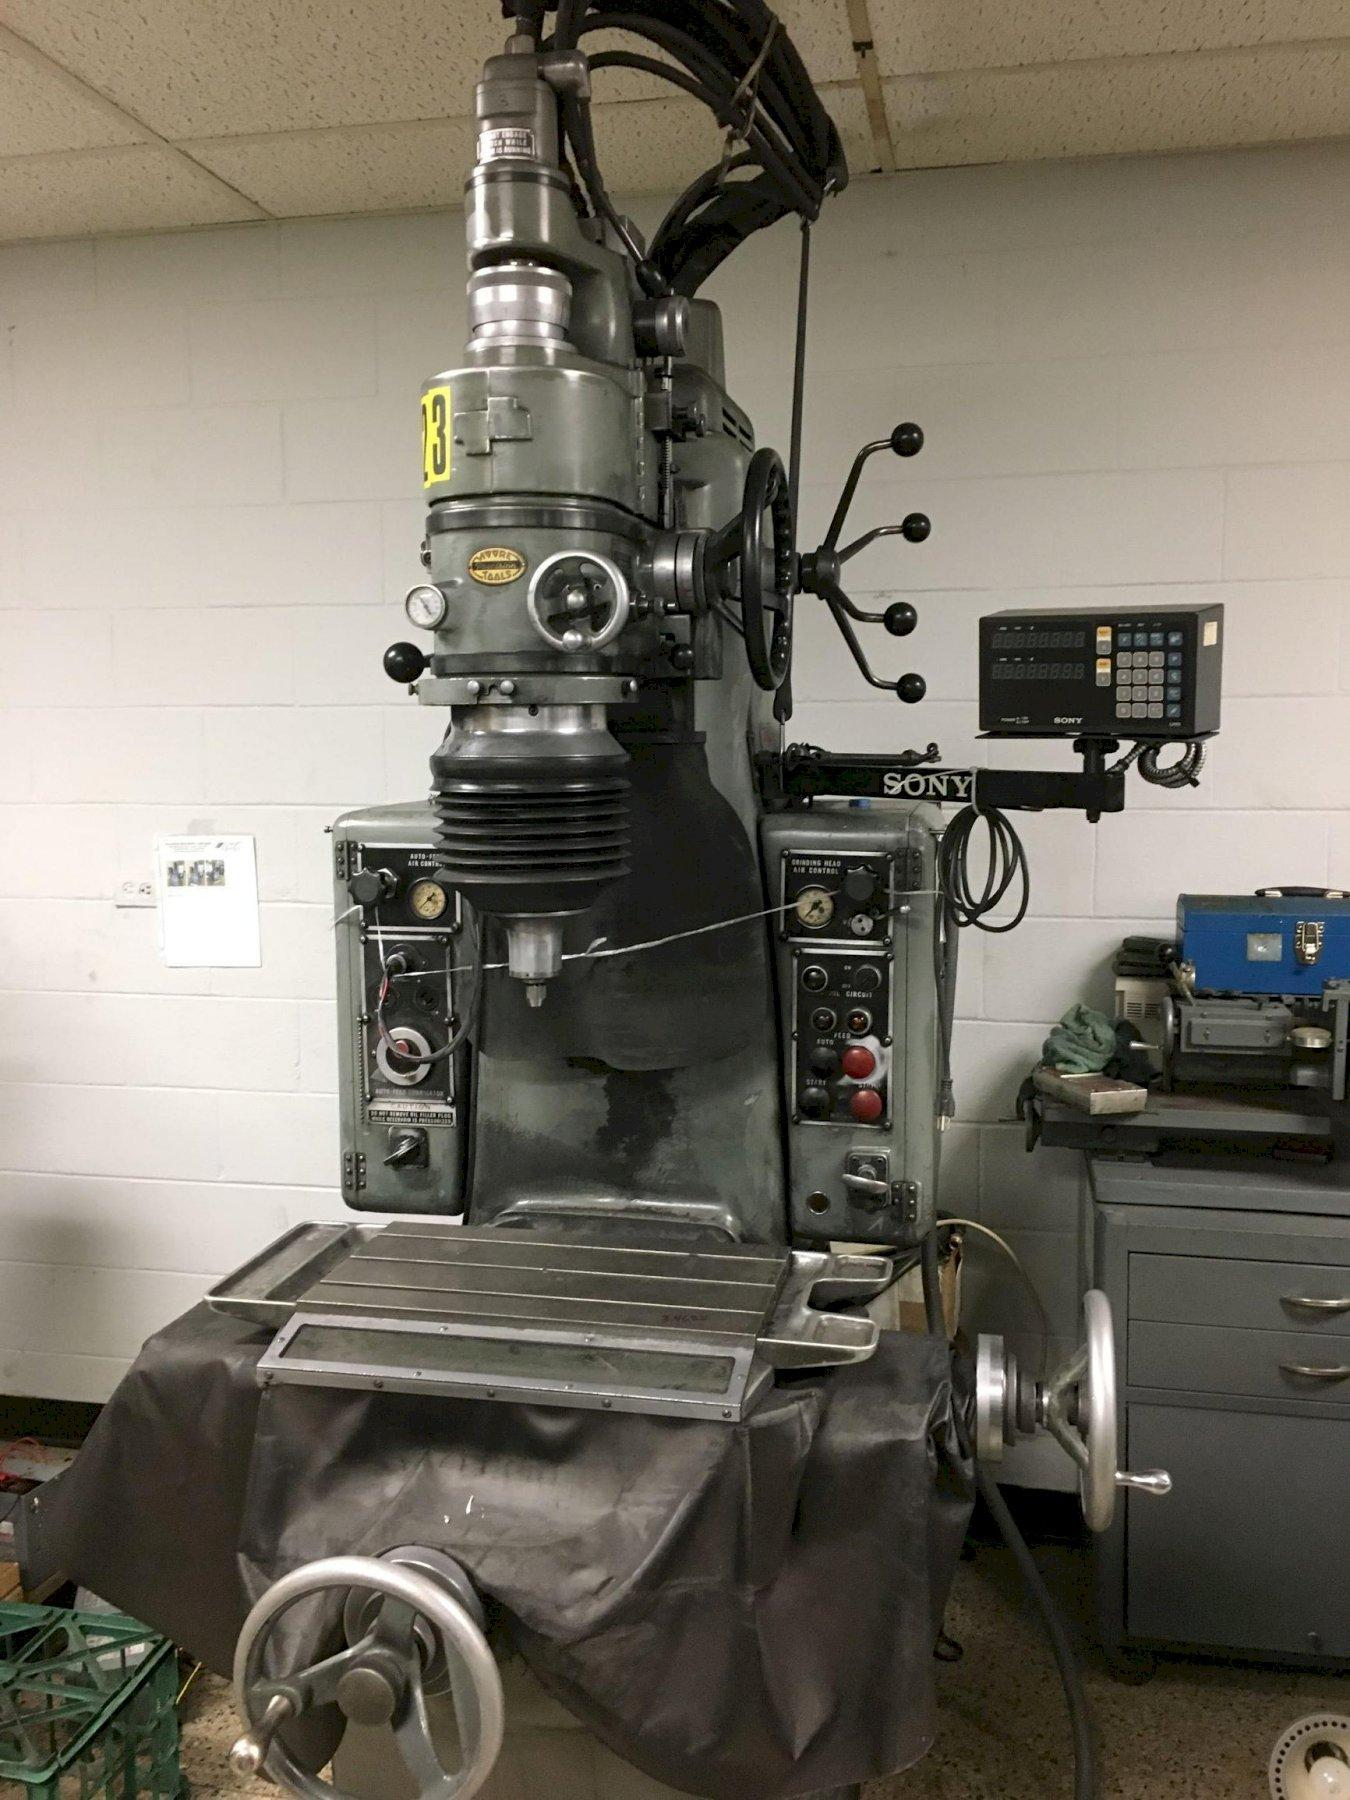 Moore Model No. 2 Precision Jig Grinder, S/N 7336.